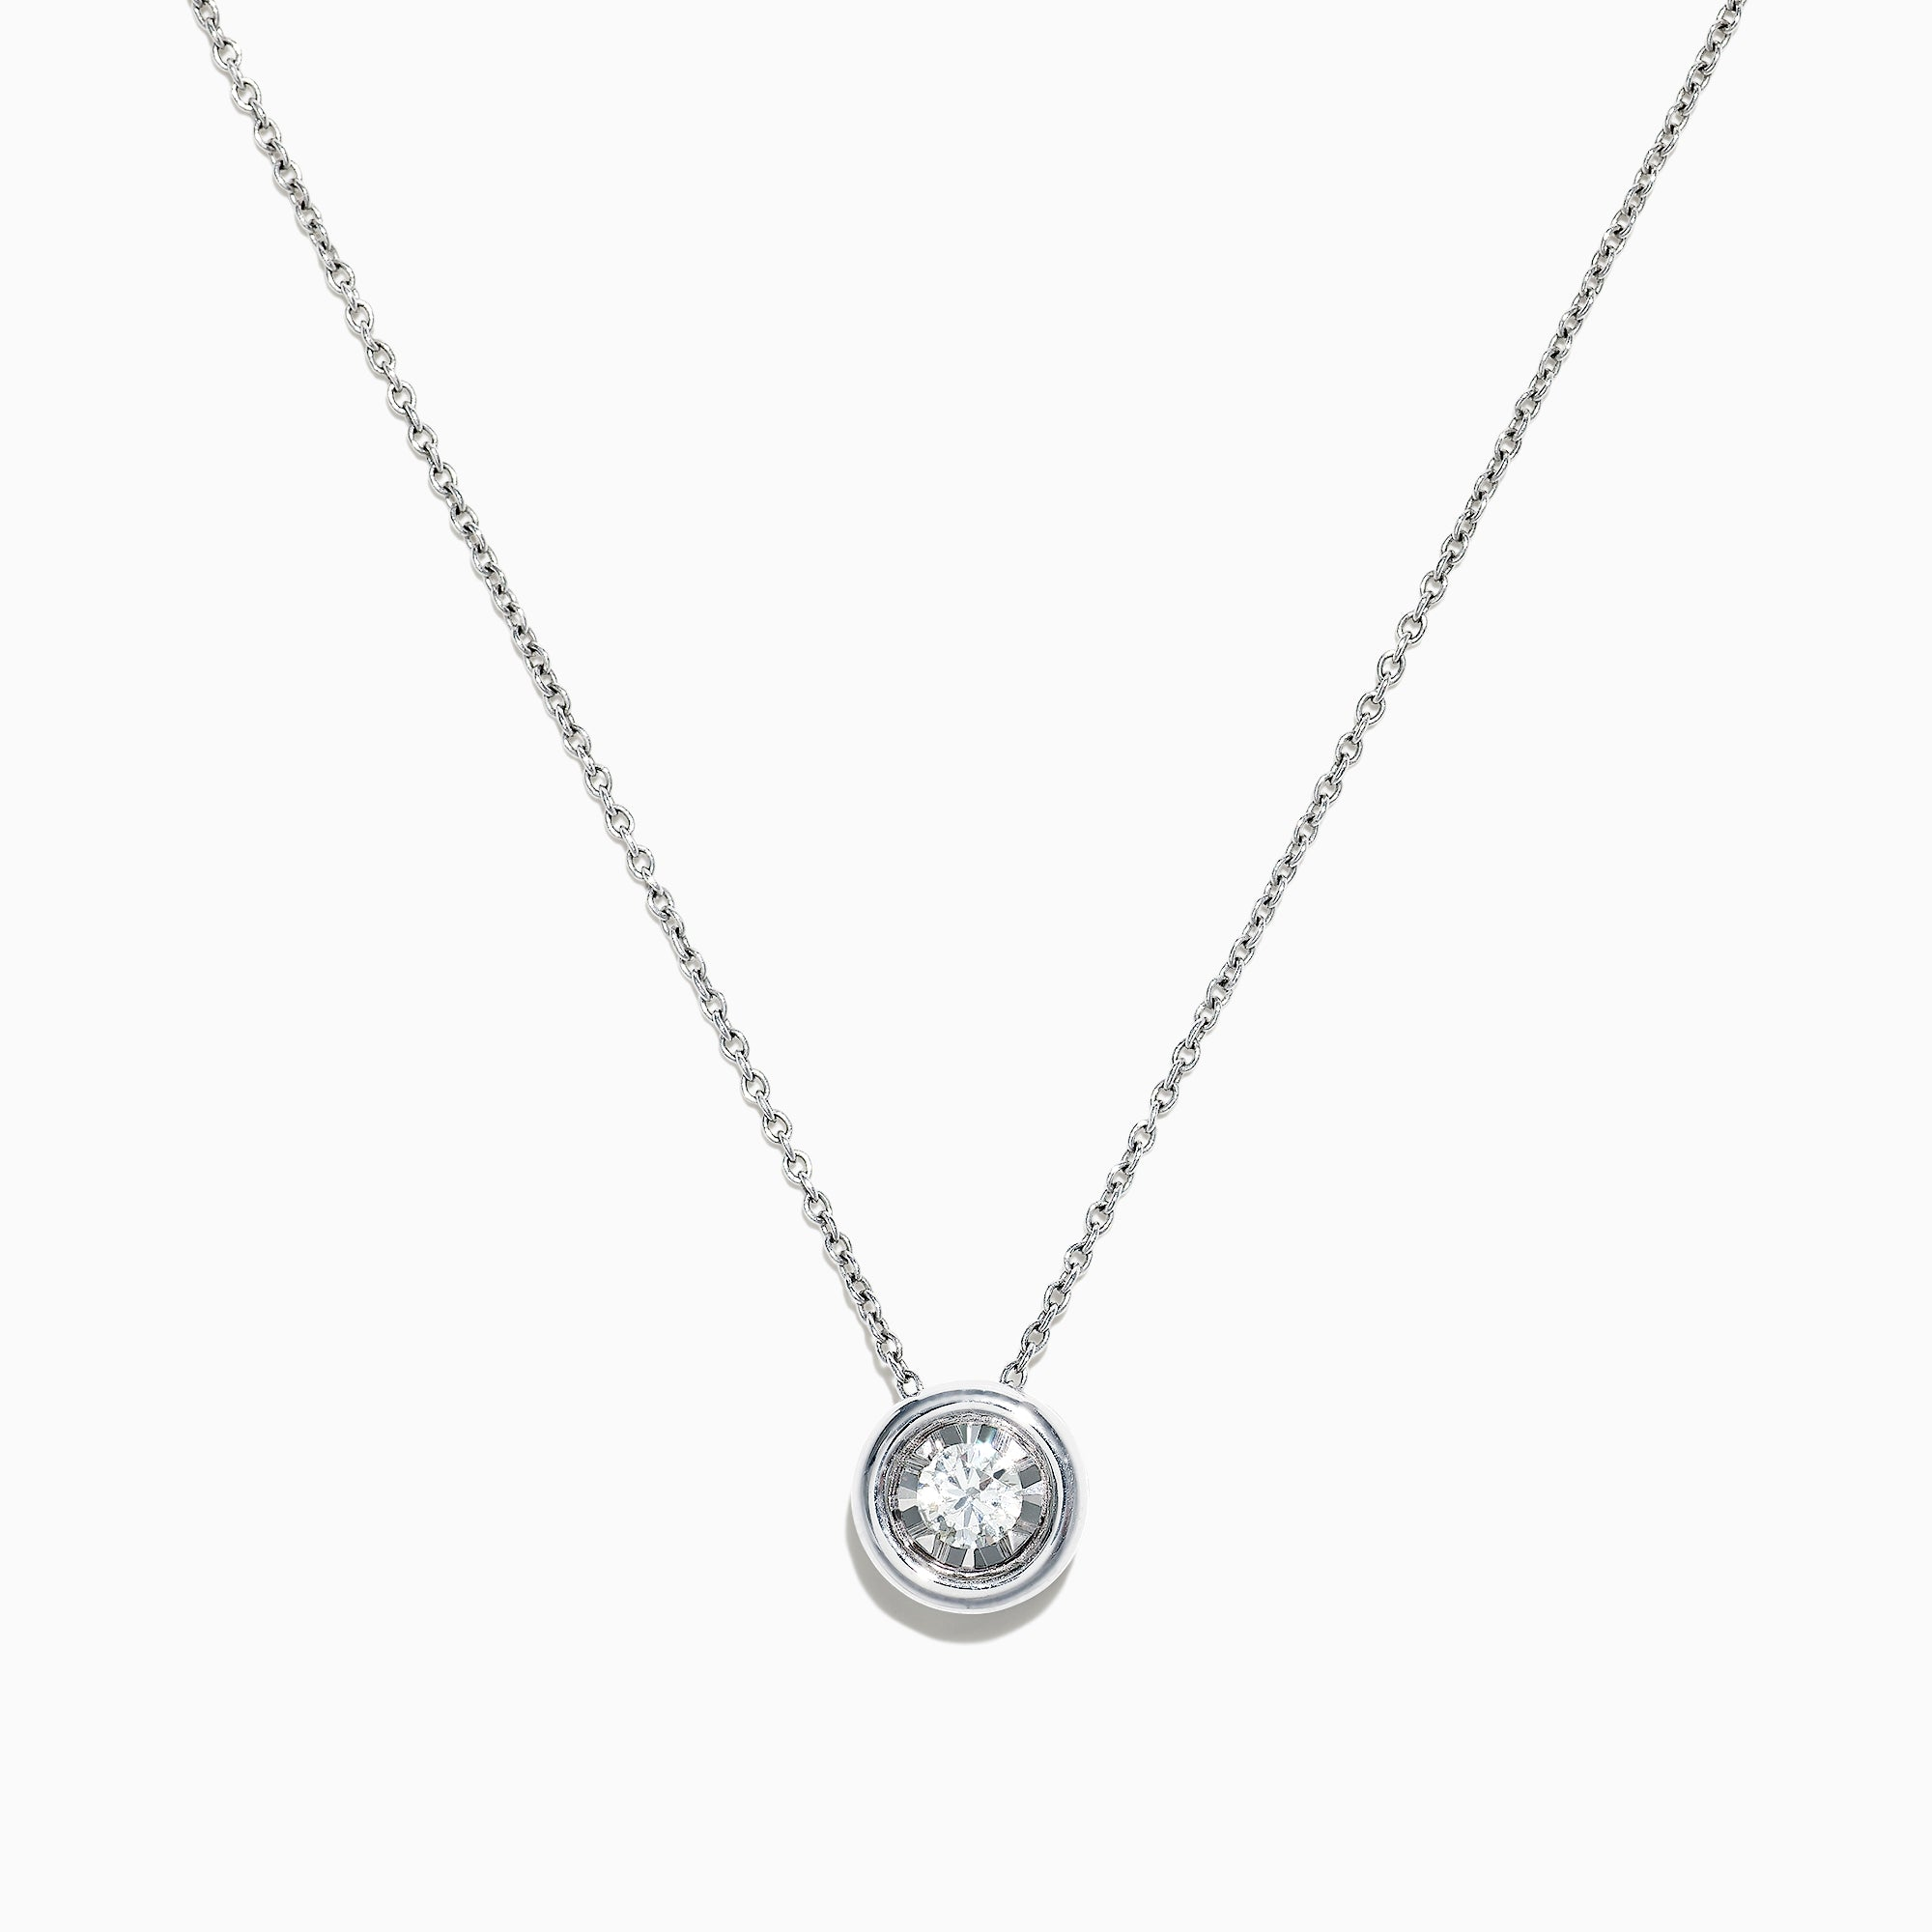 Effy 14K White Gold Diamond Bezel Set Pendant, 0.20 TCW